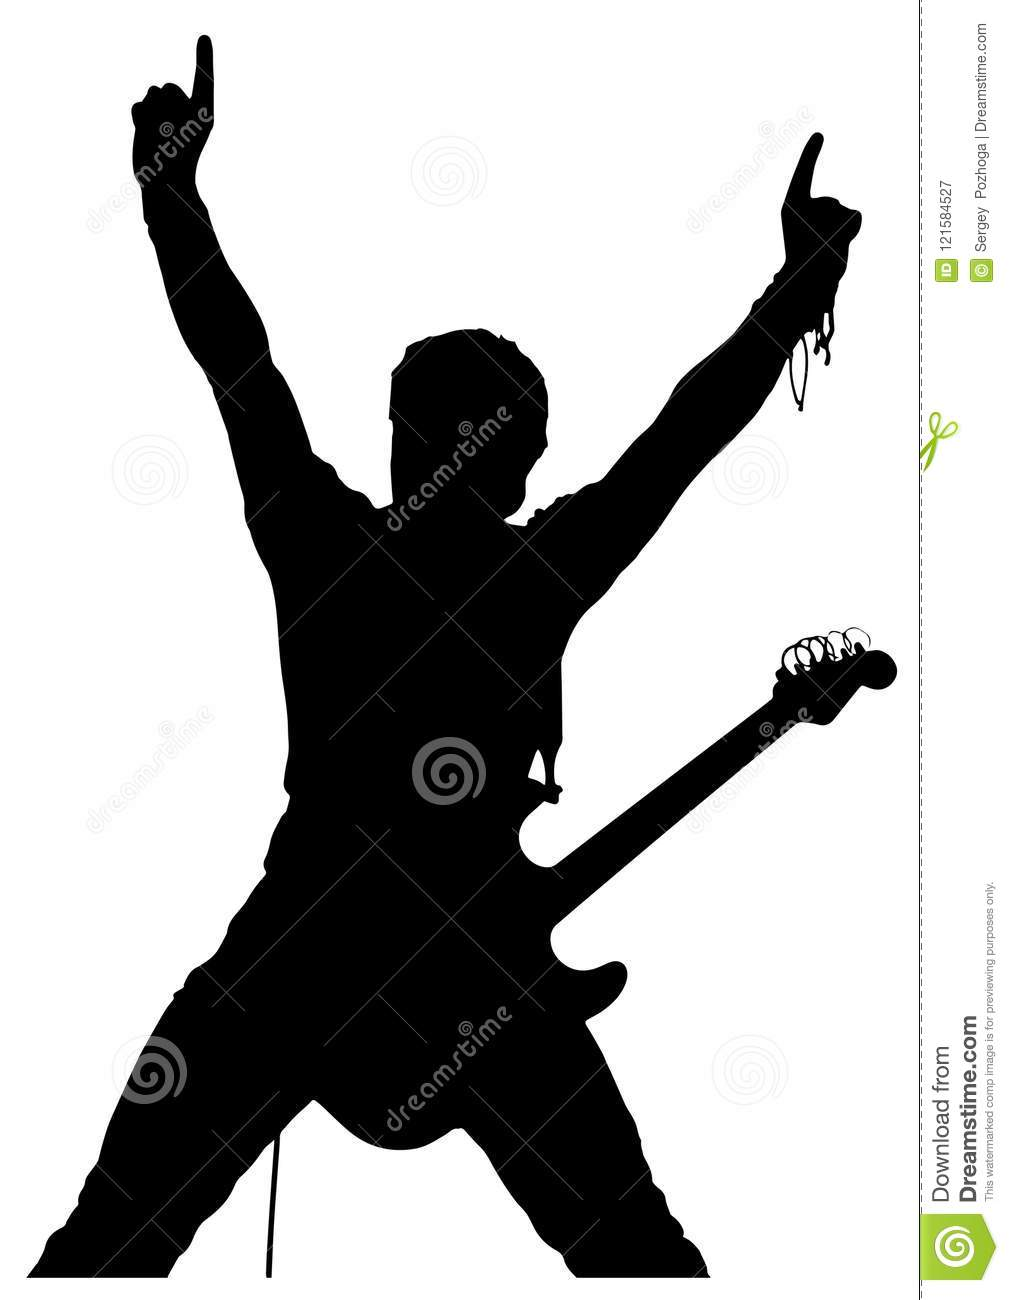 man with guitar silhouette man with guitar silhouette royalty free stock image guitar with man silhouette